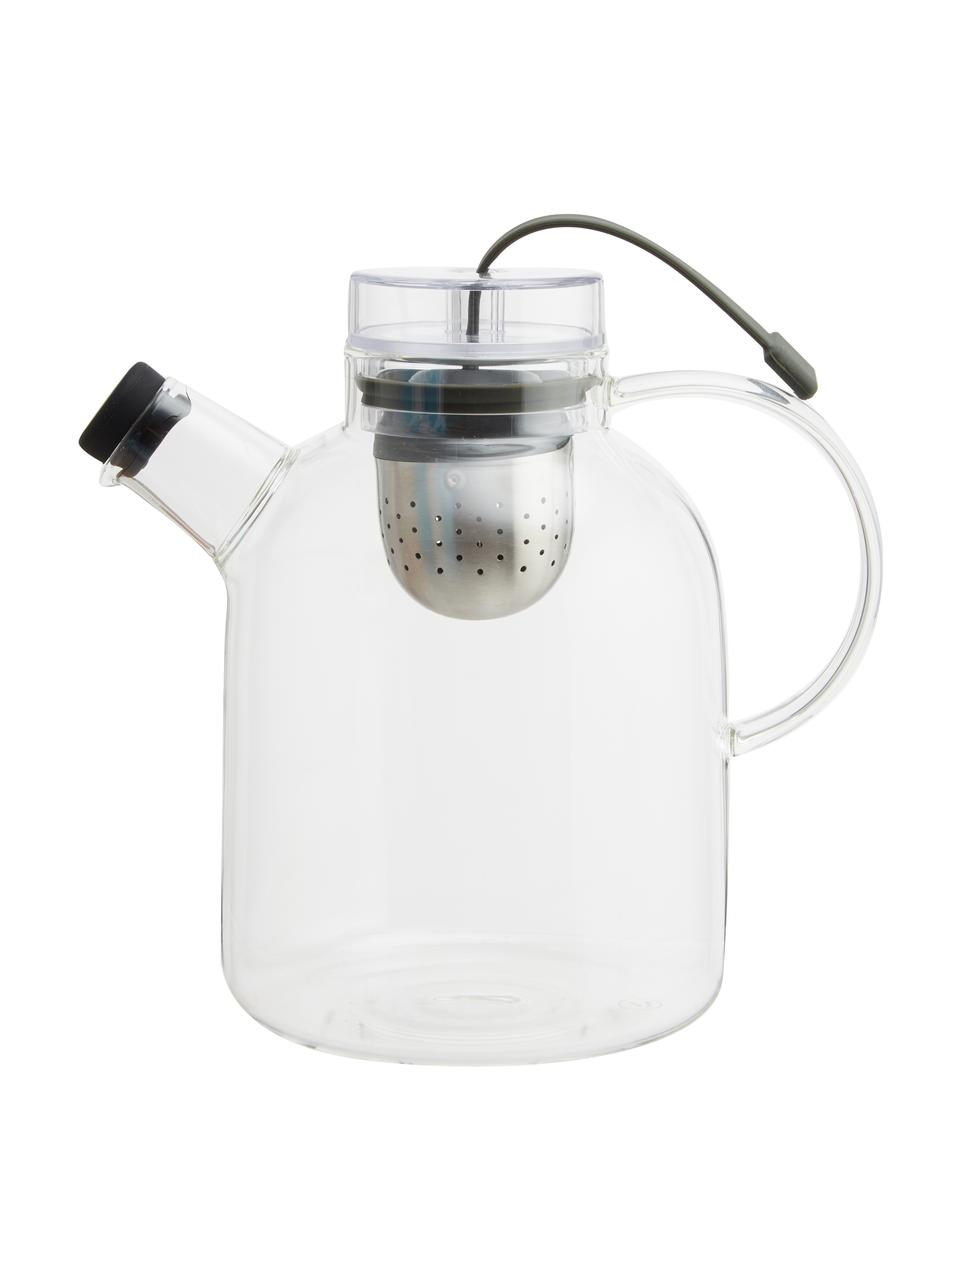 Théière design en verre Kettle, 1,5 l, Transparent